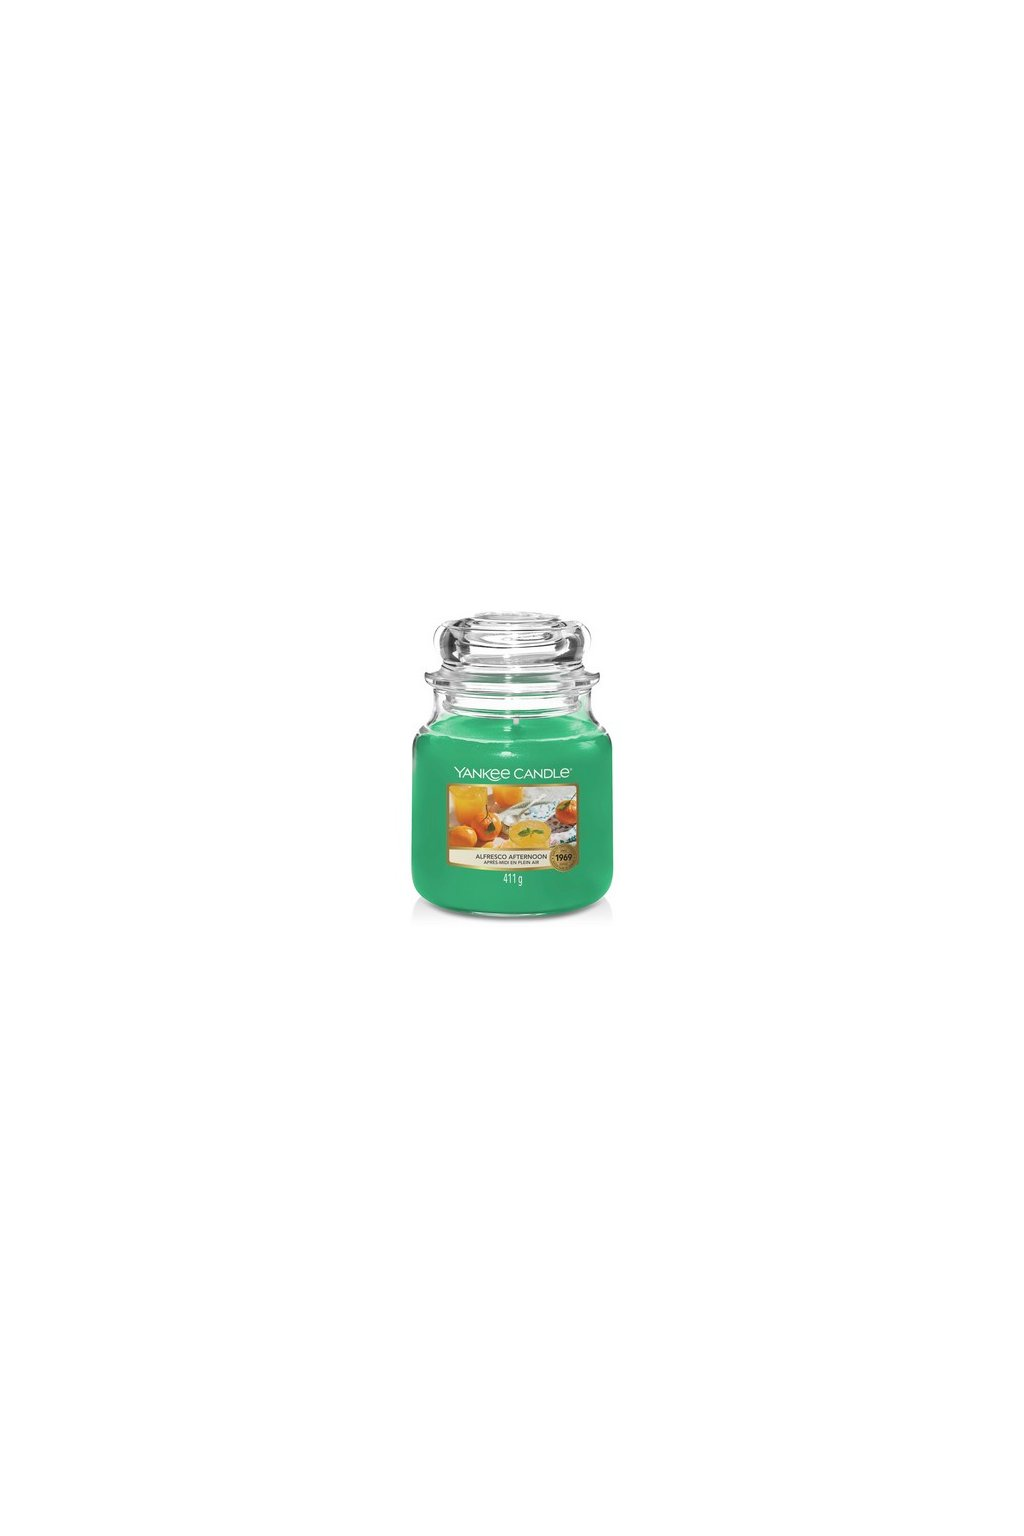 YANKEE CANDLE Alfresco Afternoon 411g